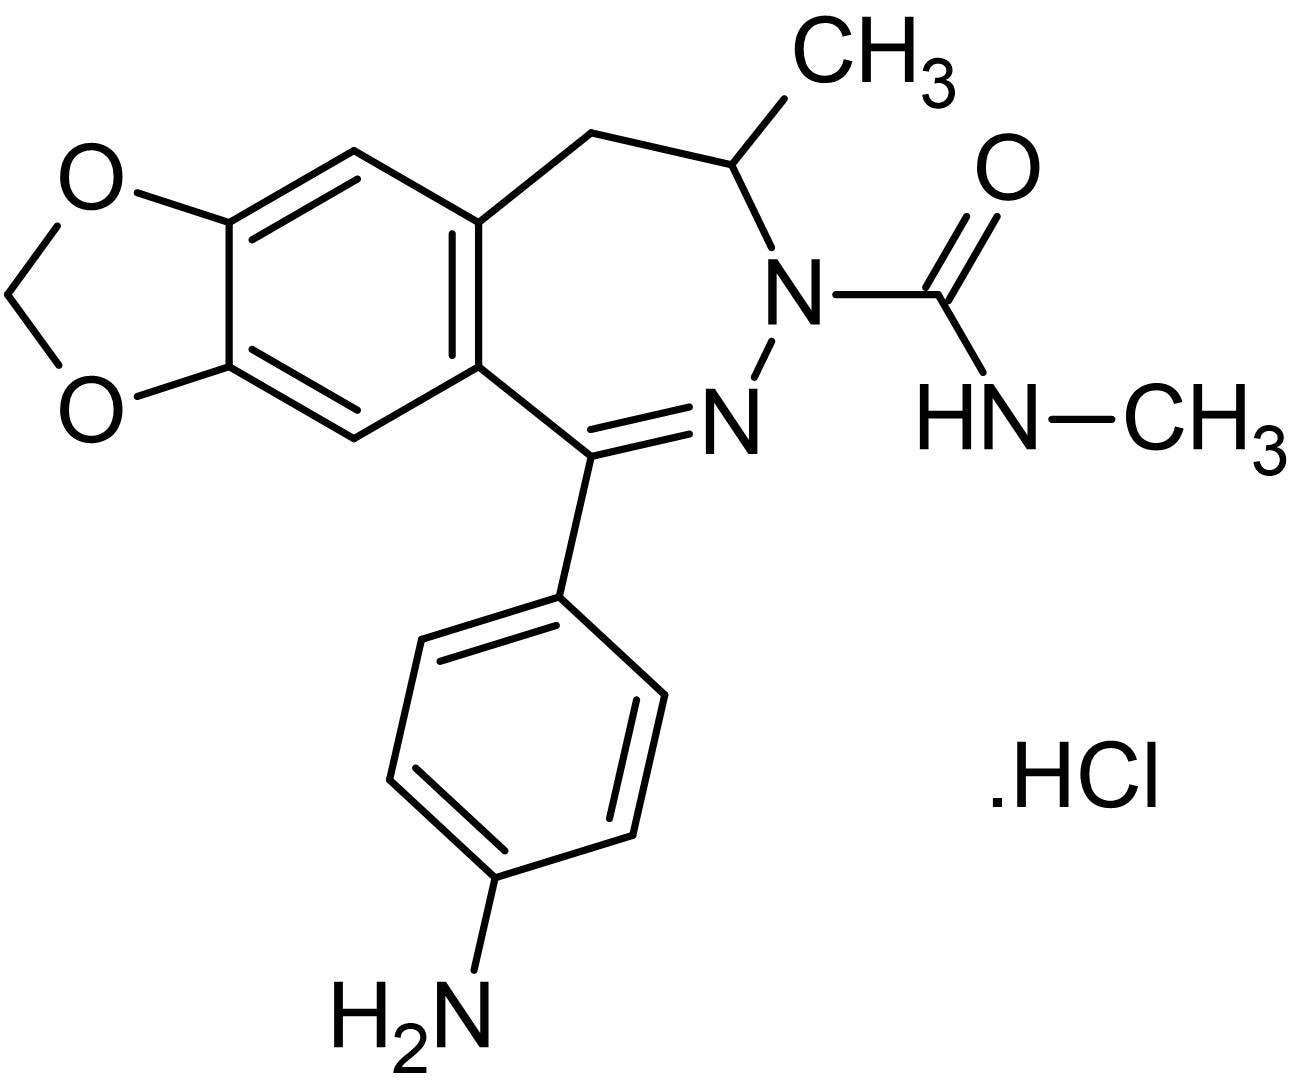 Chemical Structure - GYKI 53655 hydrochloride (mM/ml), AMPA / kainate receptor antagonist (ab144499)